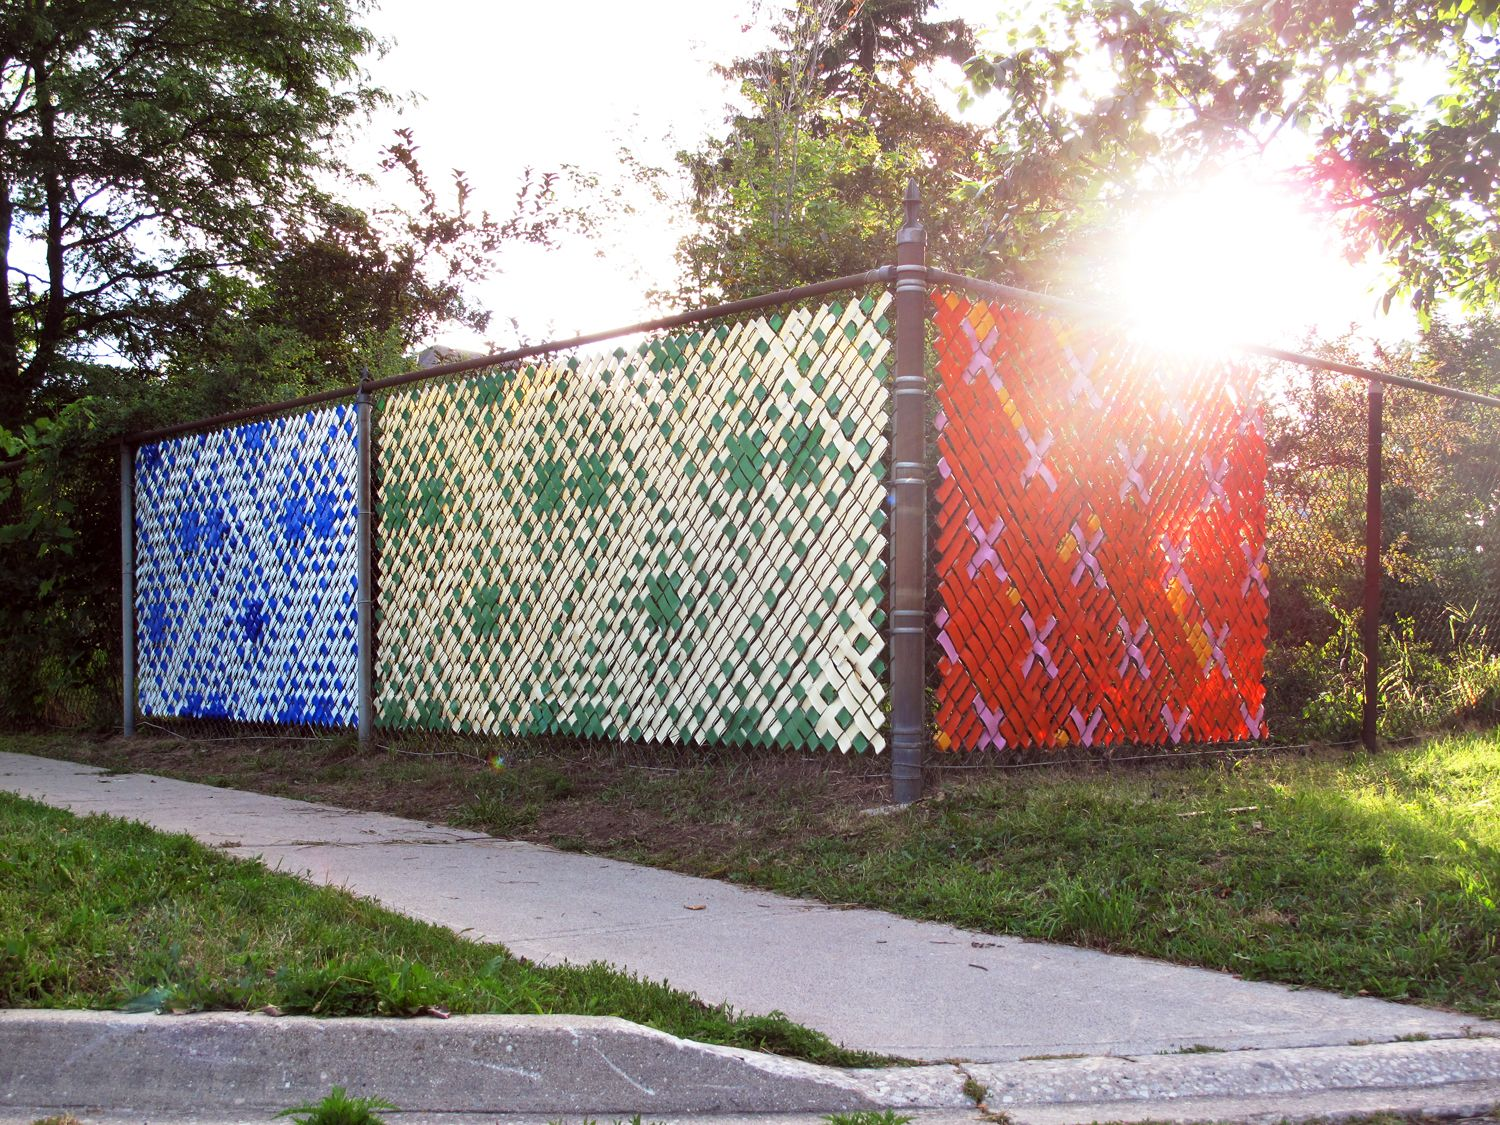 The Wallpapers Outdoor Site-specific Installation Fence